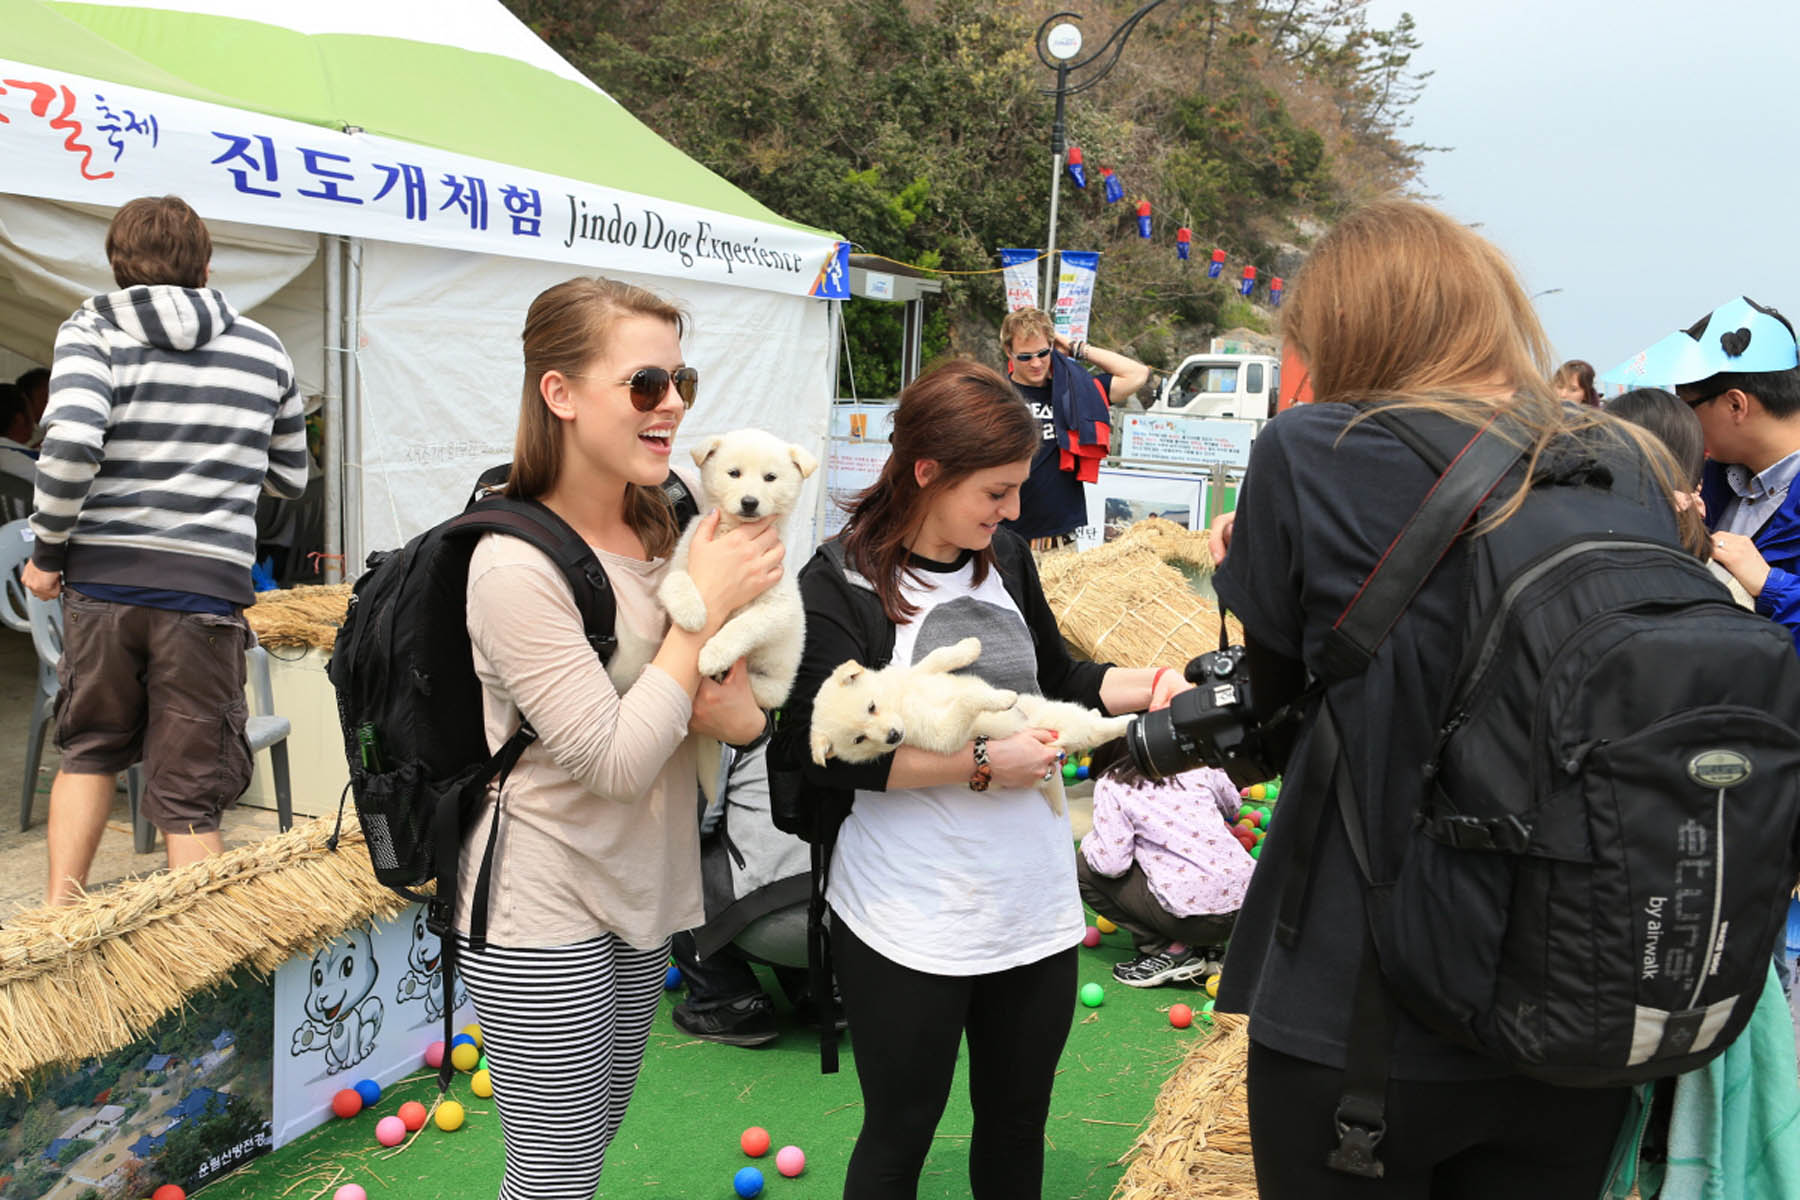 A photo from last year shows International tourists enjoying the 'Jindo Dog experience.' (Newsis)